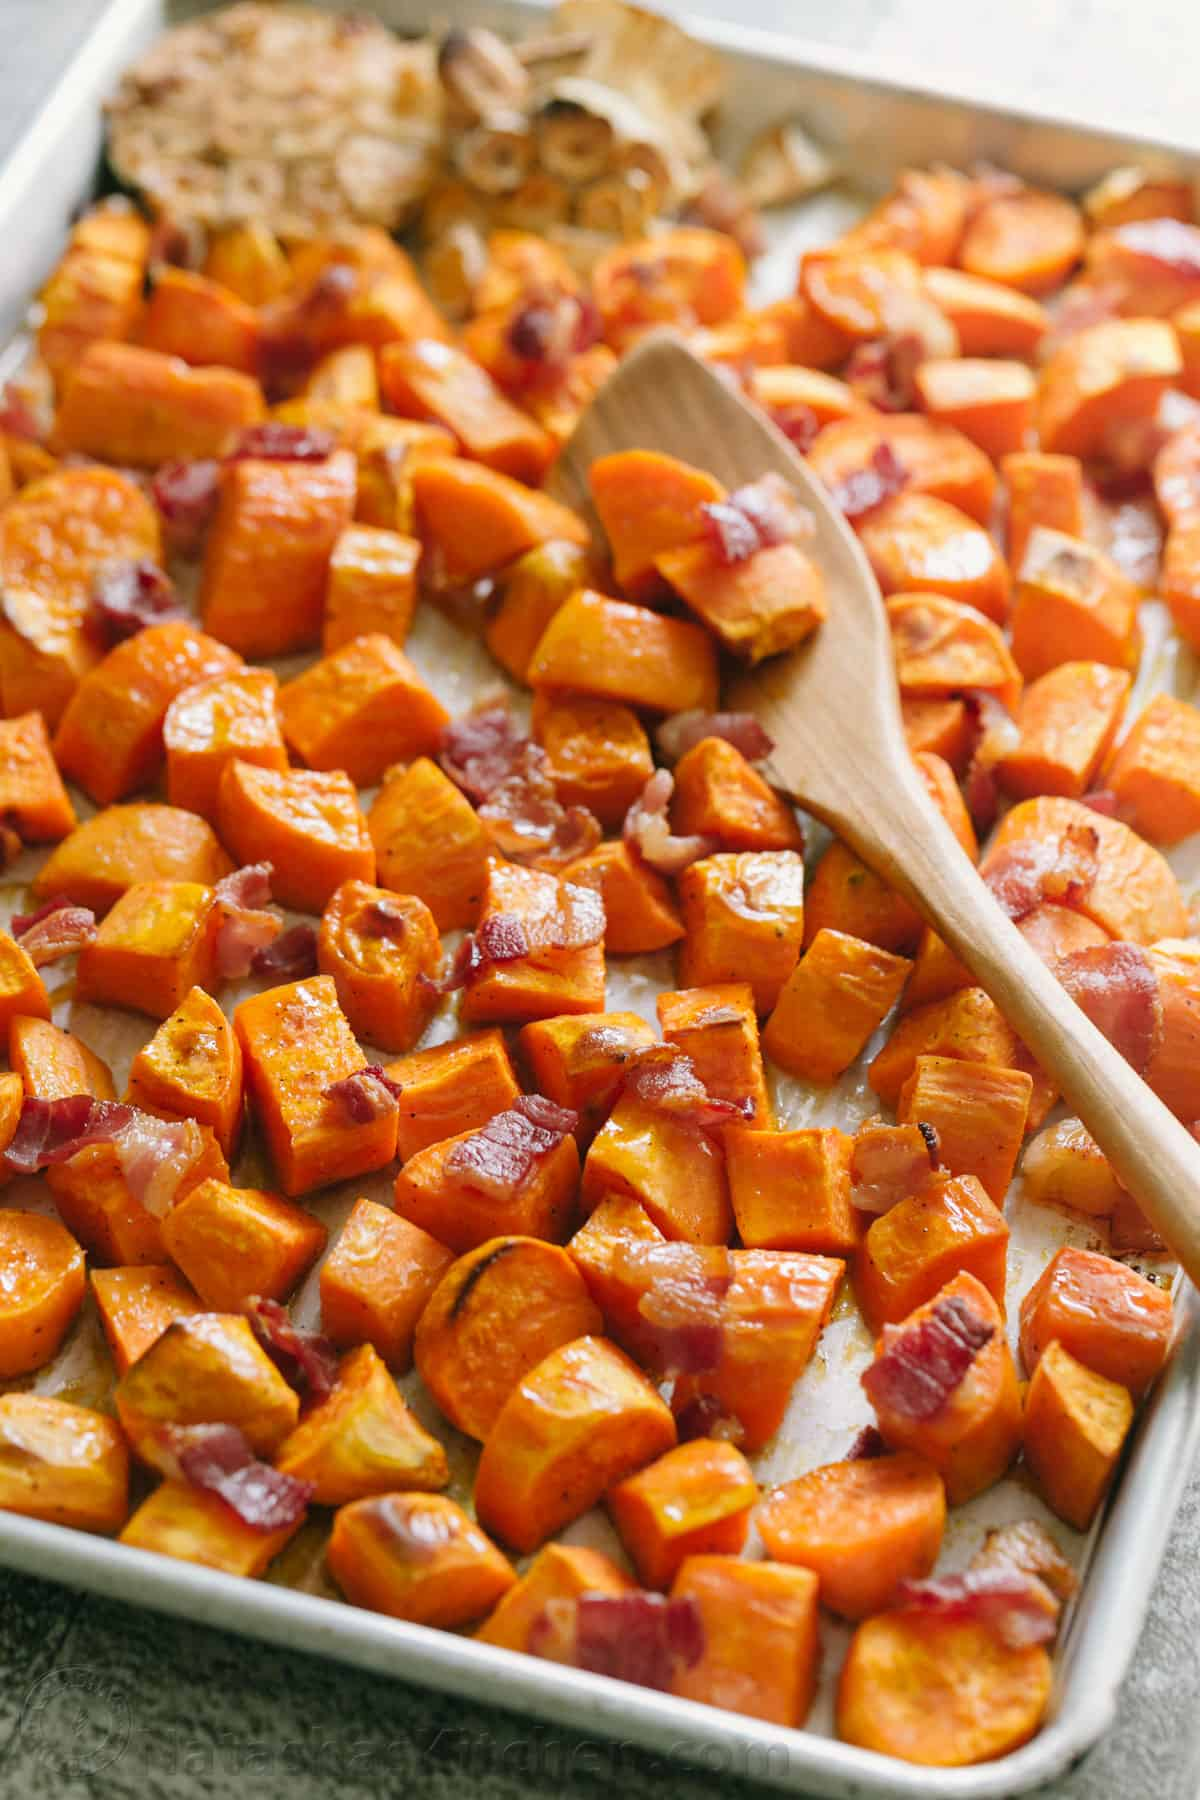 How to roast sweet potato cubes on baking sheet